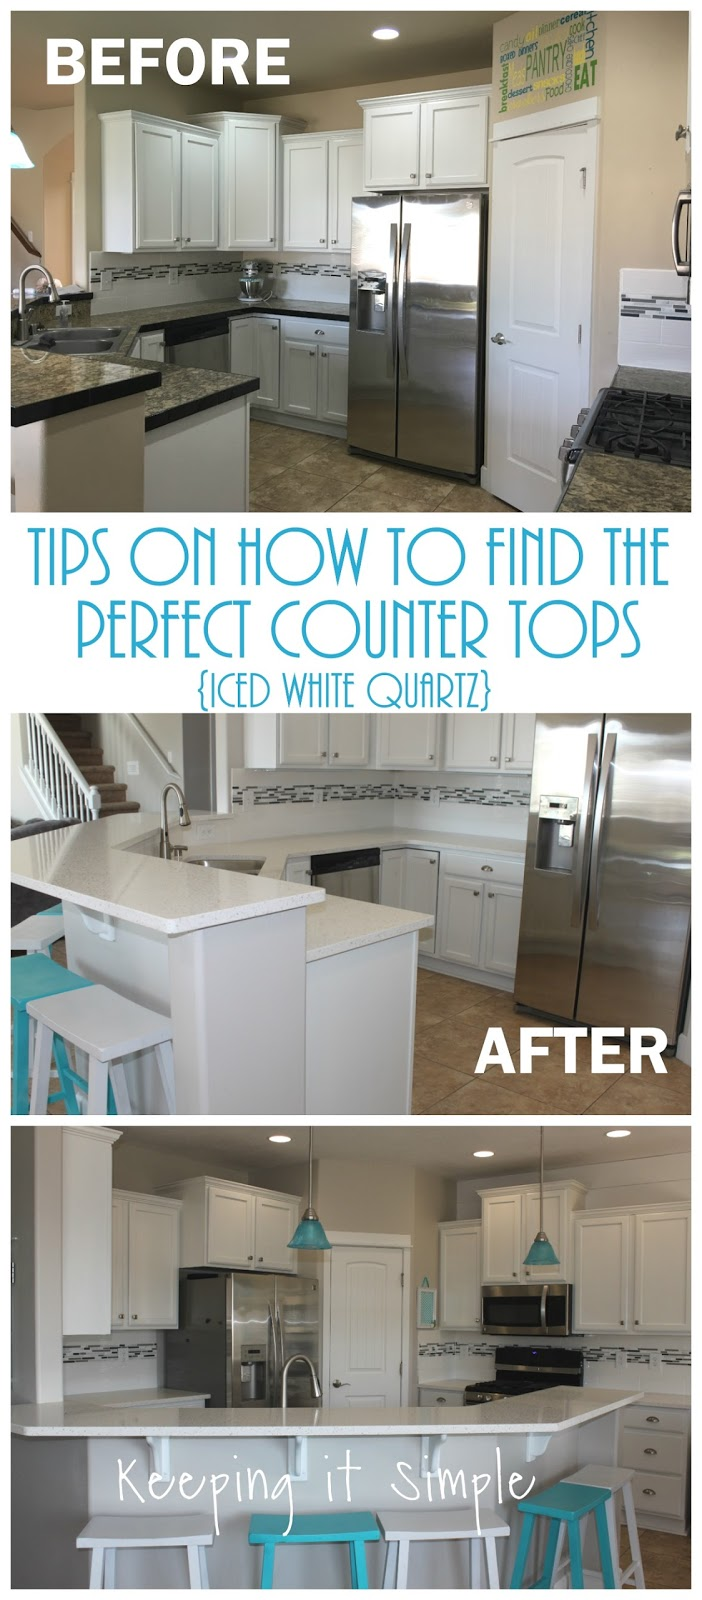 Tips On How To Replace Countertops In Your Kitchen